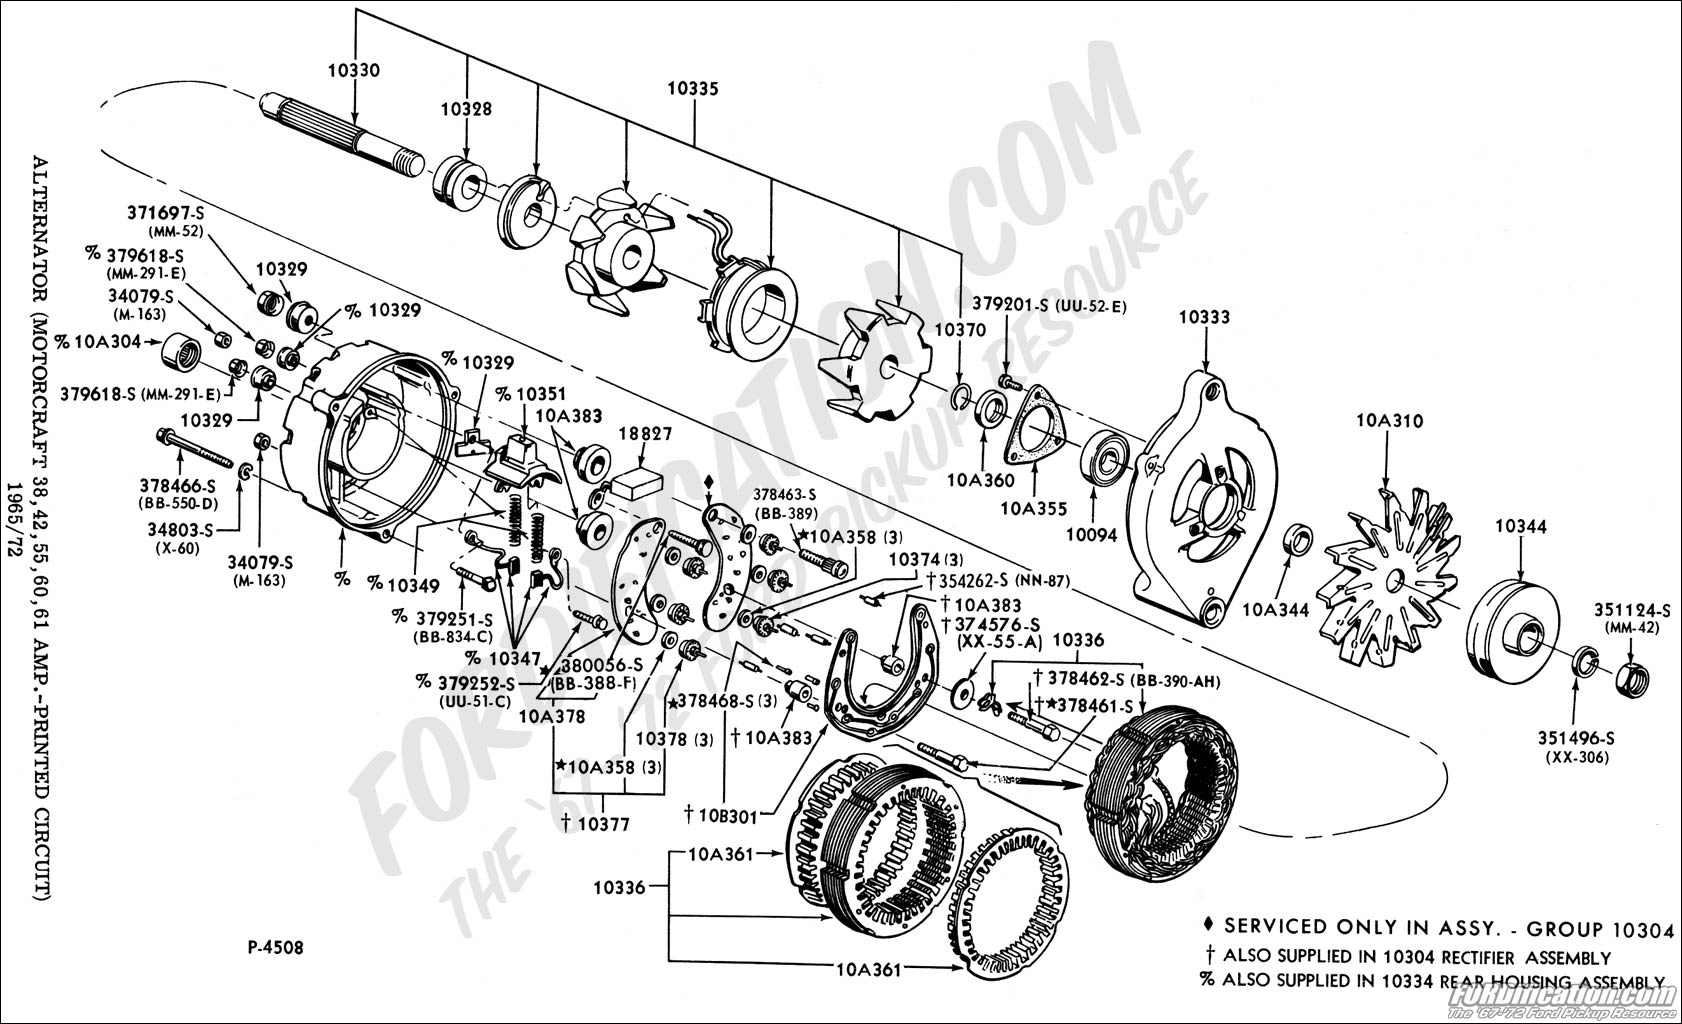 [DIAGRAM_3ER]  Ford Truck Technical Drawings and Schematics - Section I - Electrical and  Wiring | 1966 Ford Alternator Diagram Wiring Schematic |  | FORDification.com